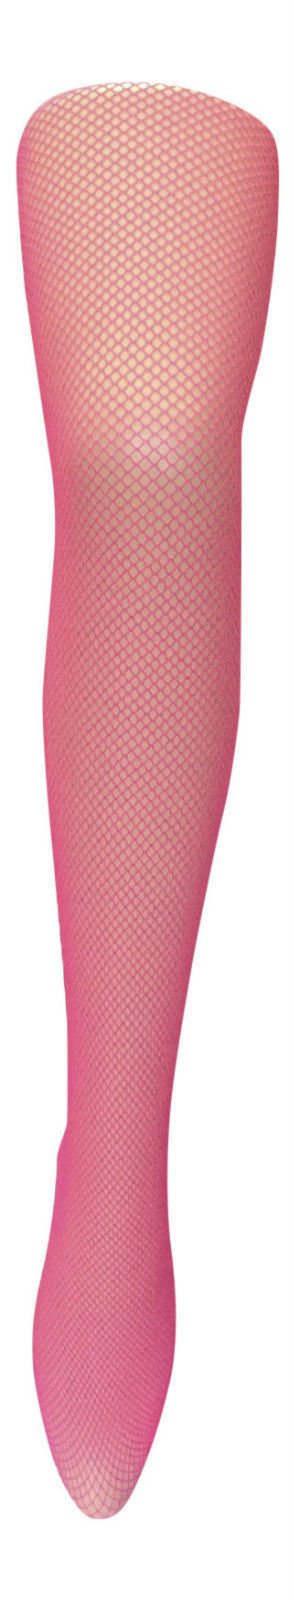 Sock Snob - Ladies Sexy Neon Coloured Dance Coloured Fishnet Tights 8 - 14 uk